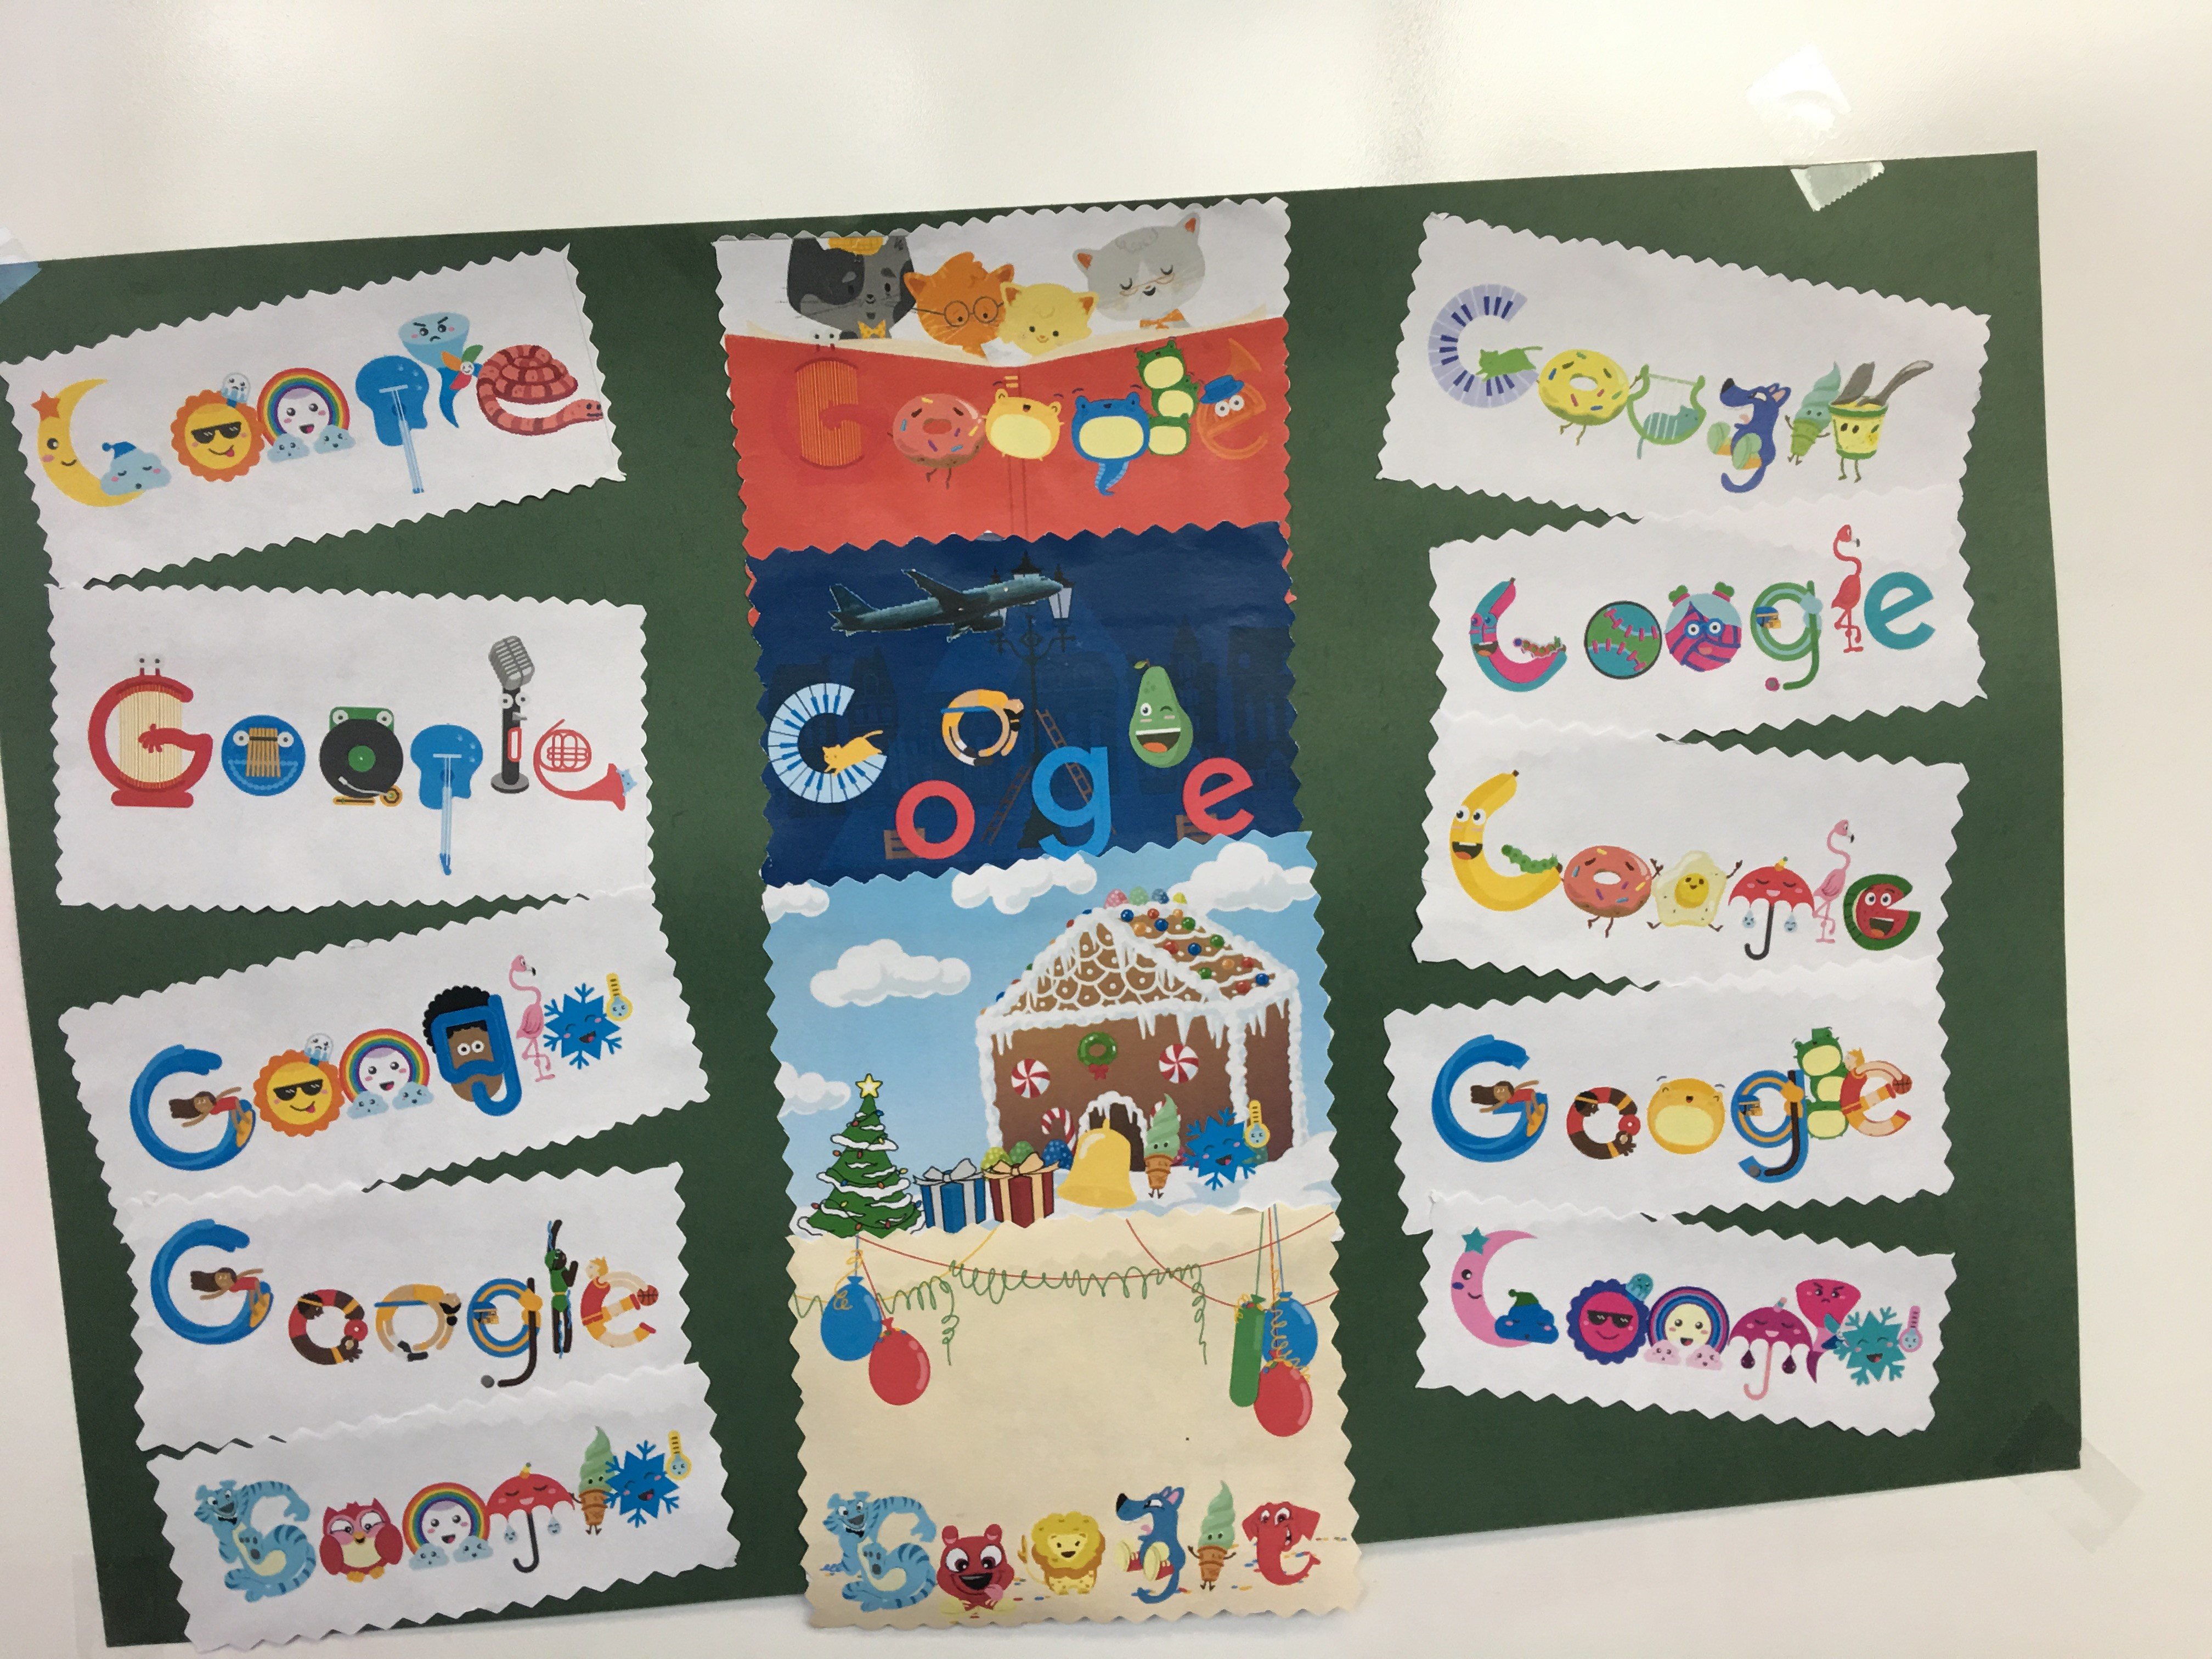 3rd-5th Grade Google Doodle Coding Creations